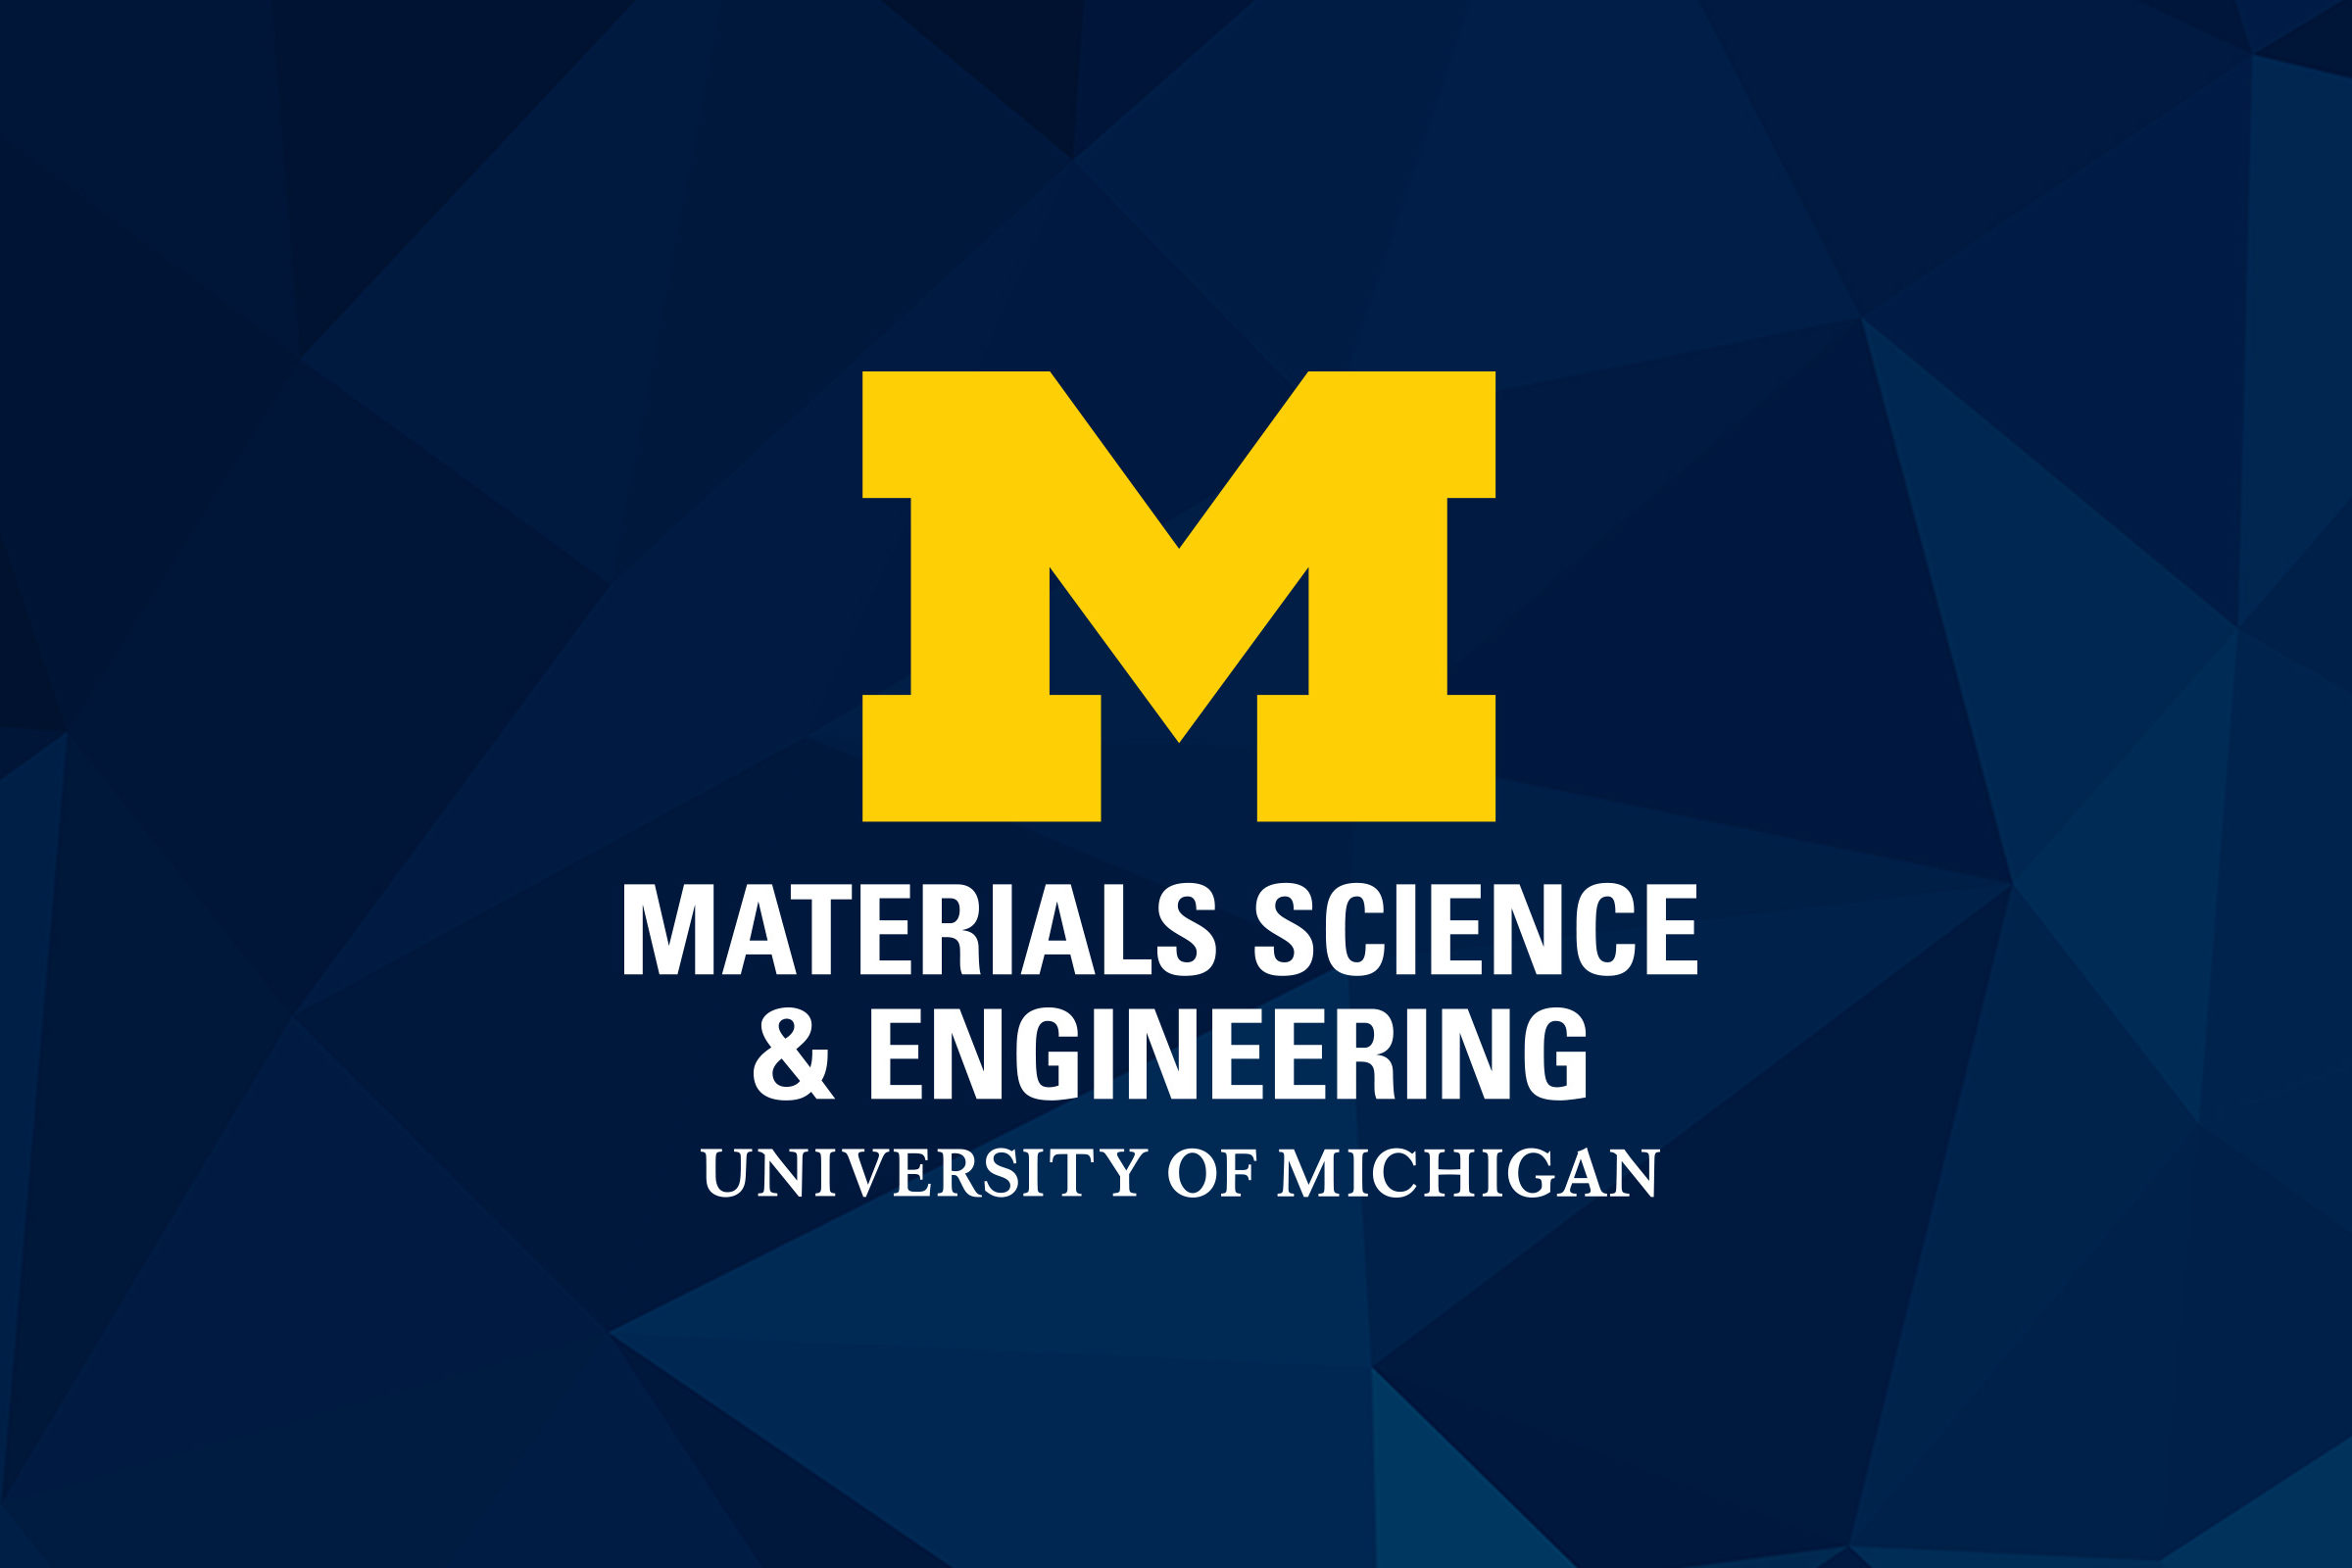 Materials Science & Engineering logo